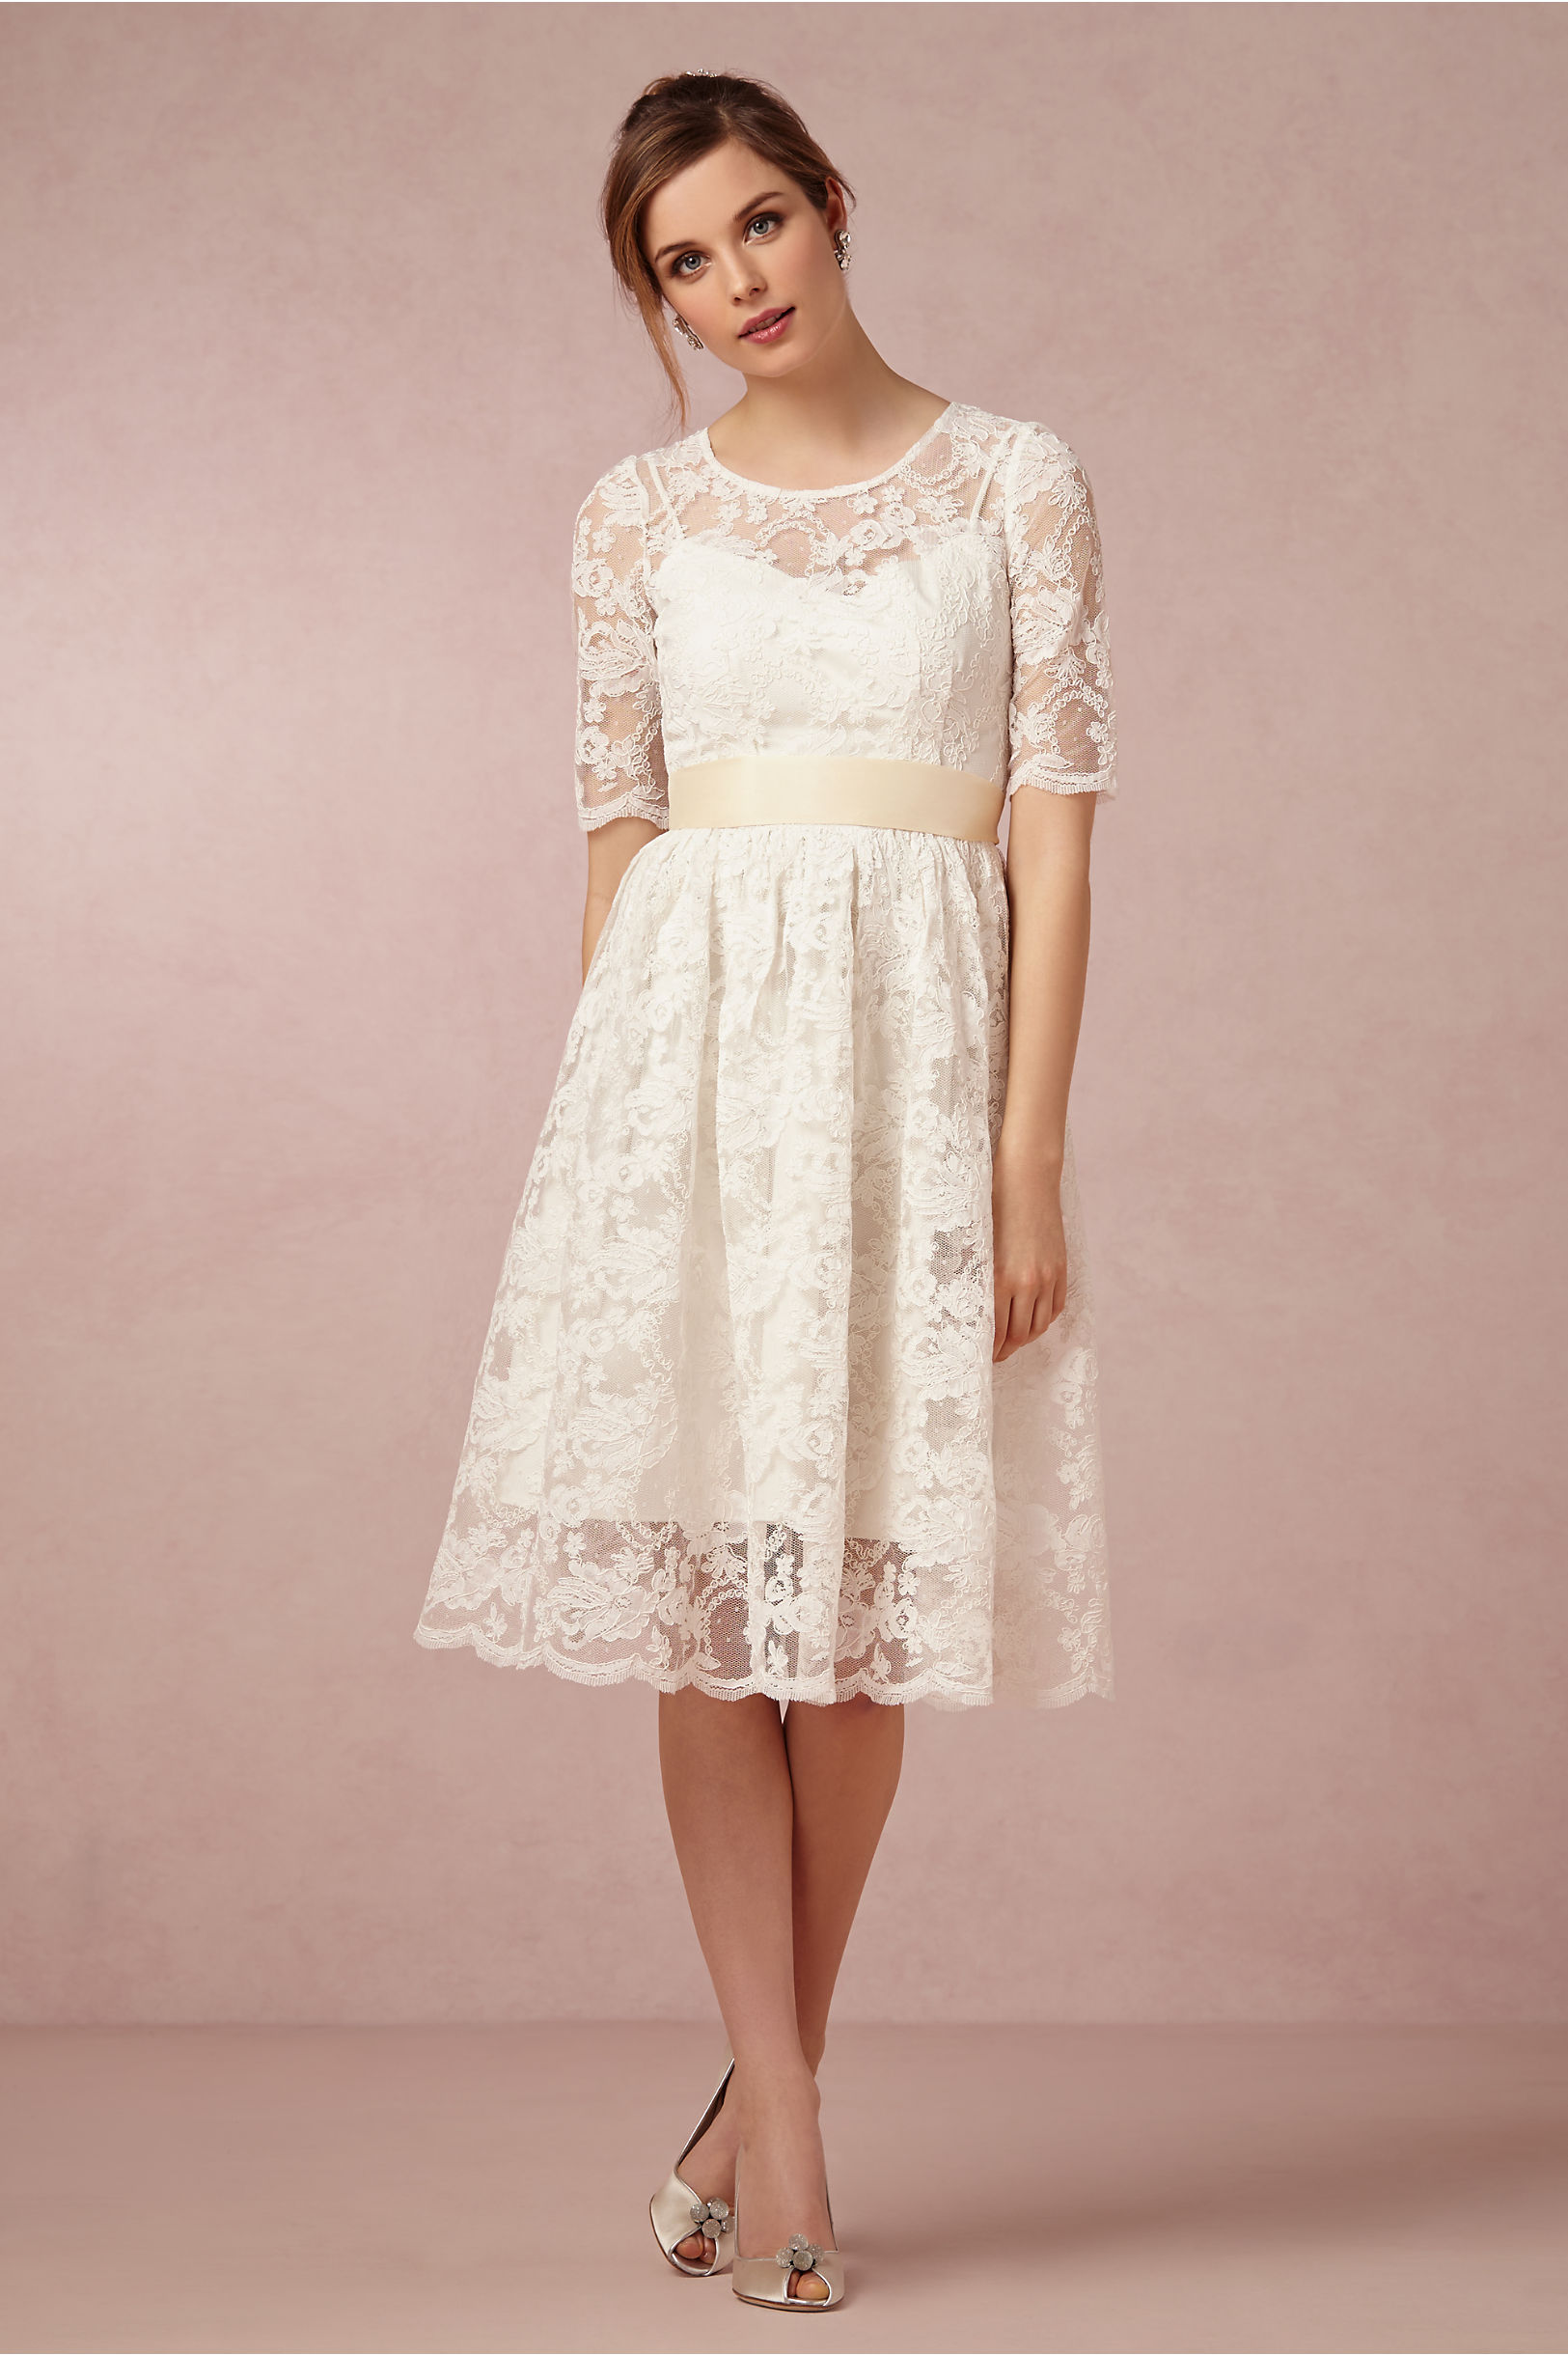 Short Sleeved A-line Knee Length Lace Wedding Dress with Ribbon